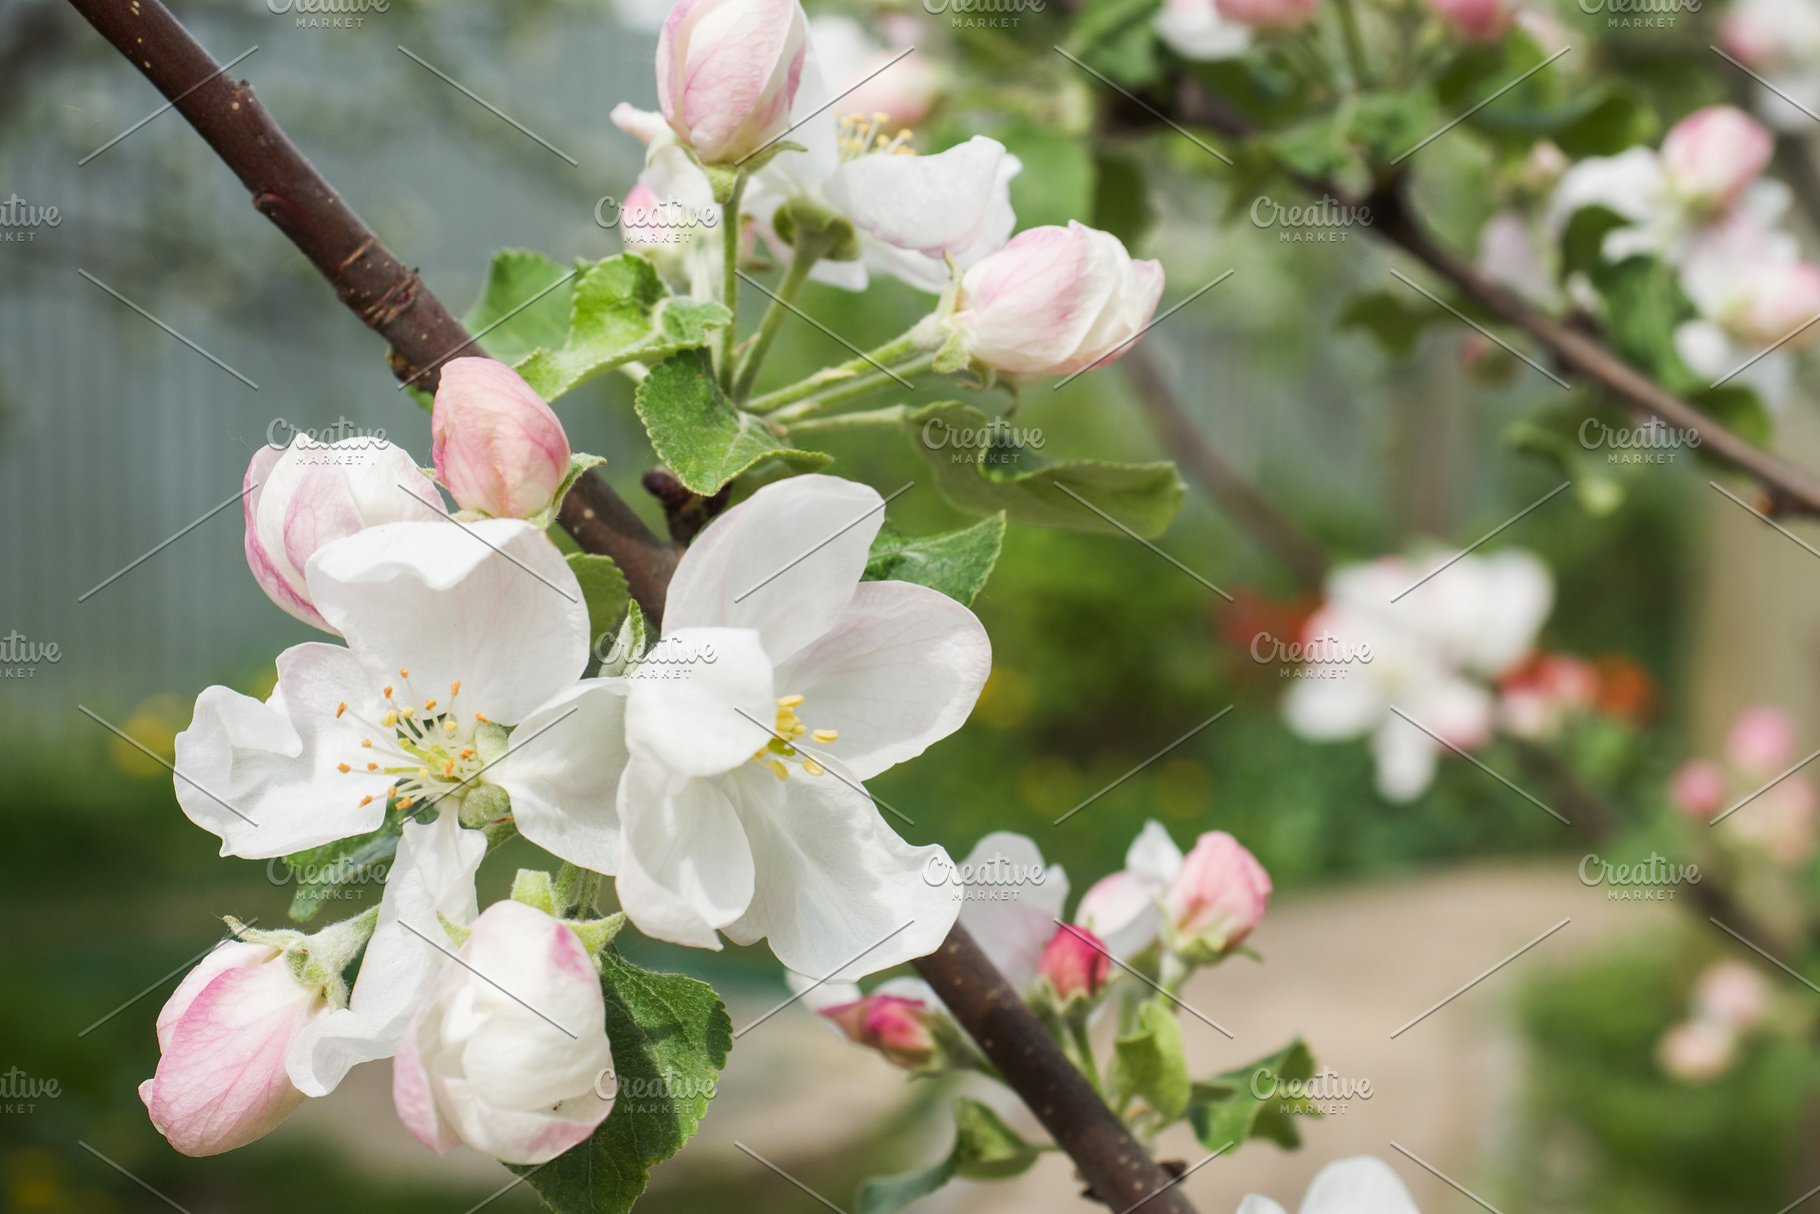 Flowers And Buds Of Apple Trees High Quality Nature Stock Photos